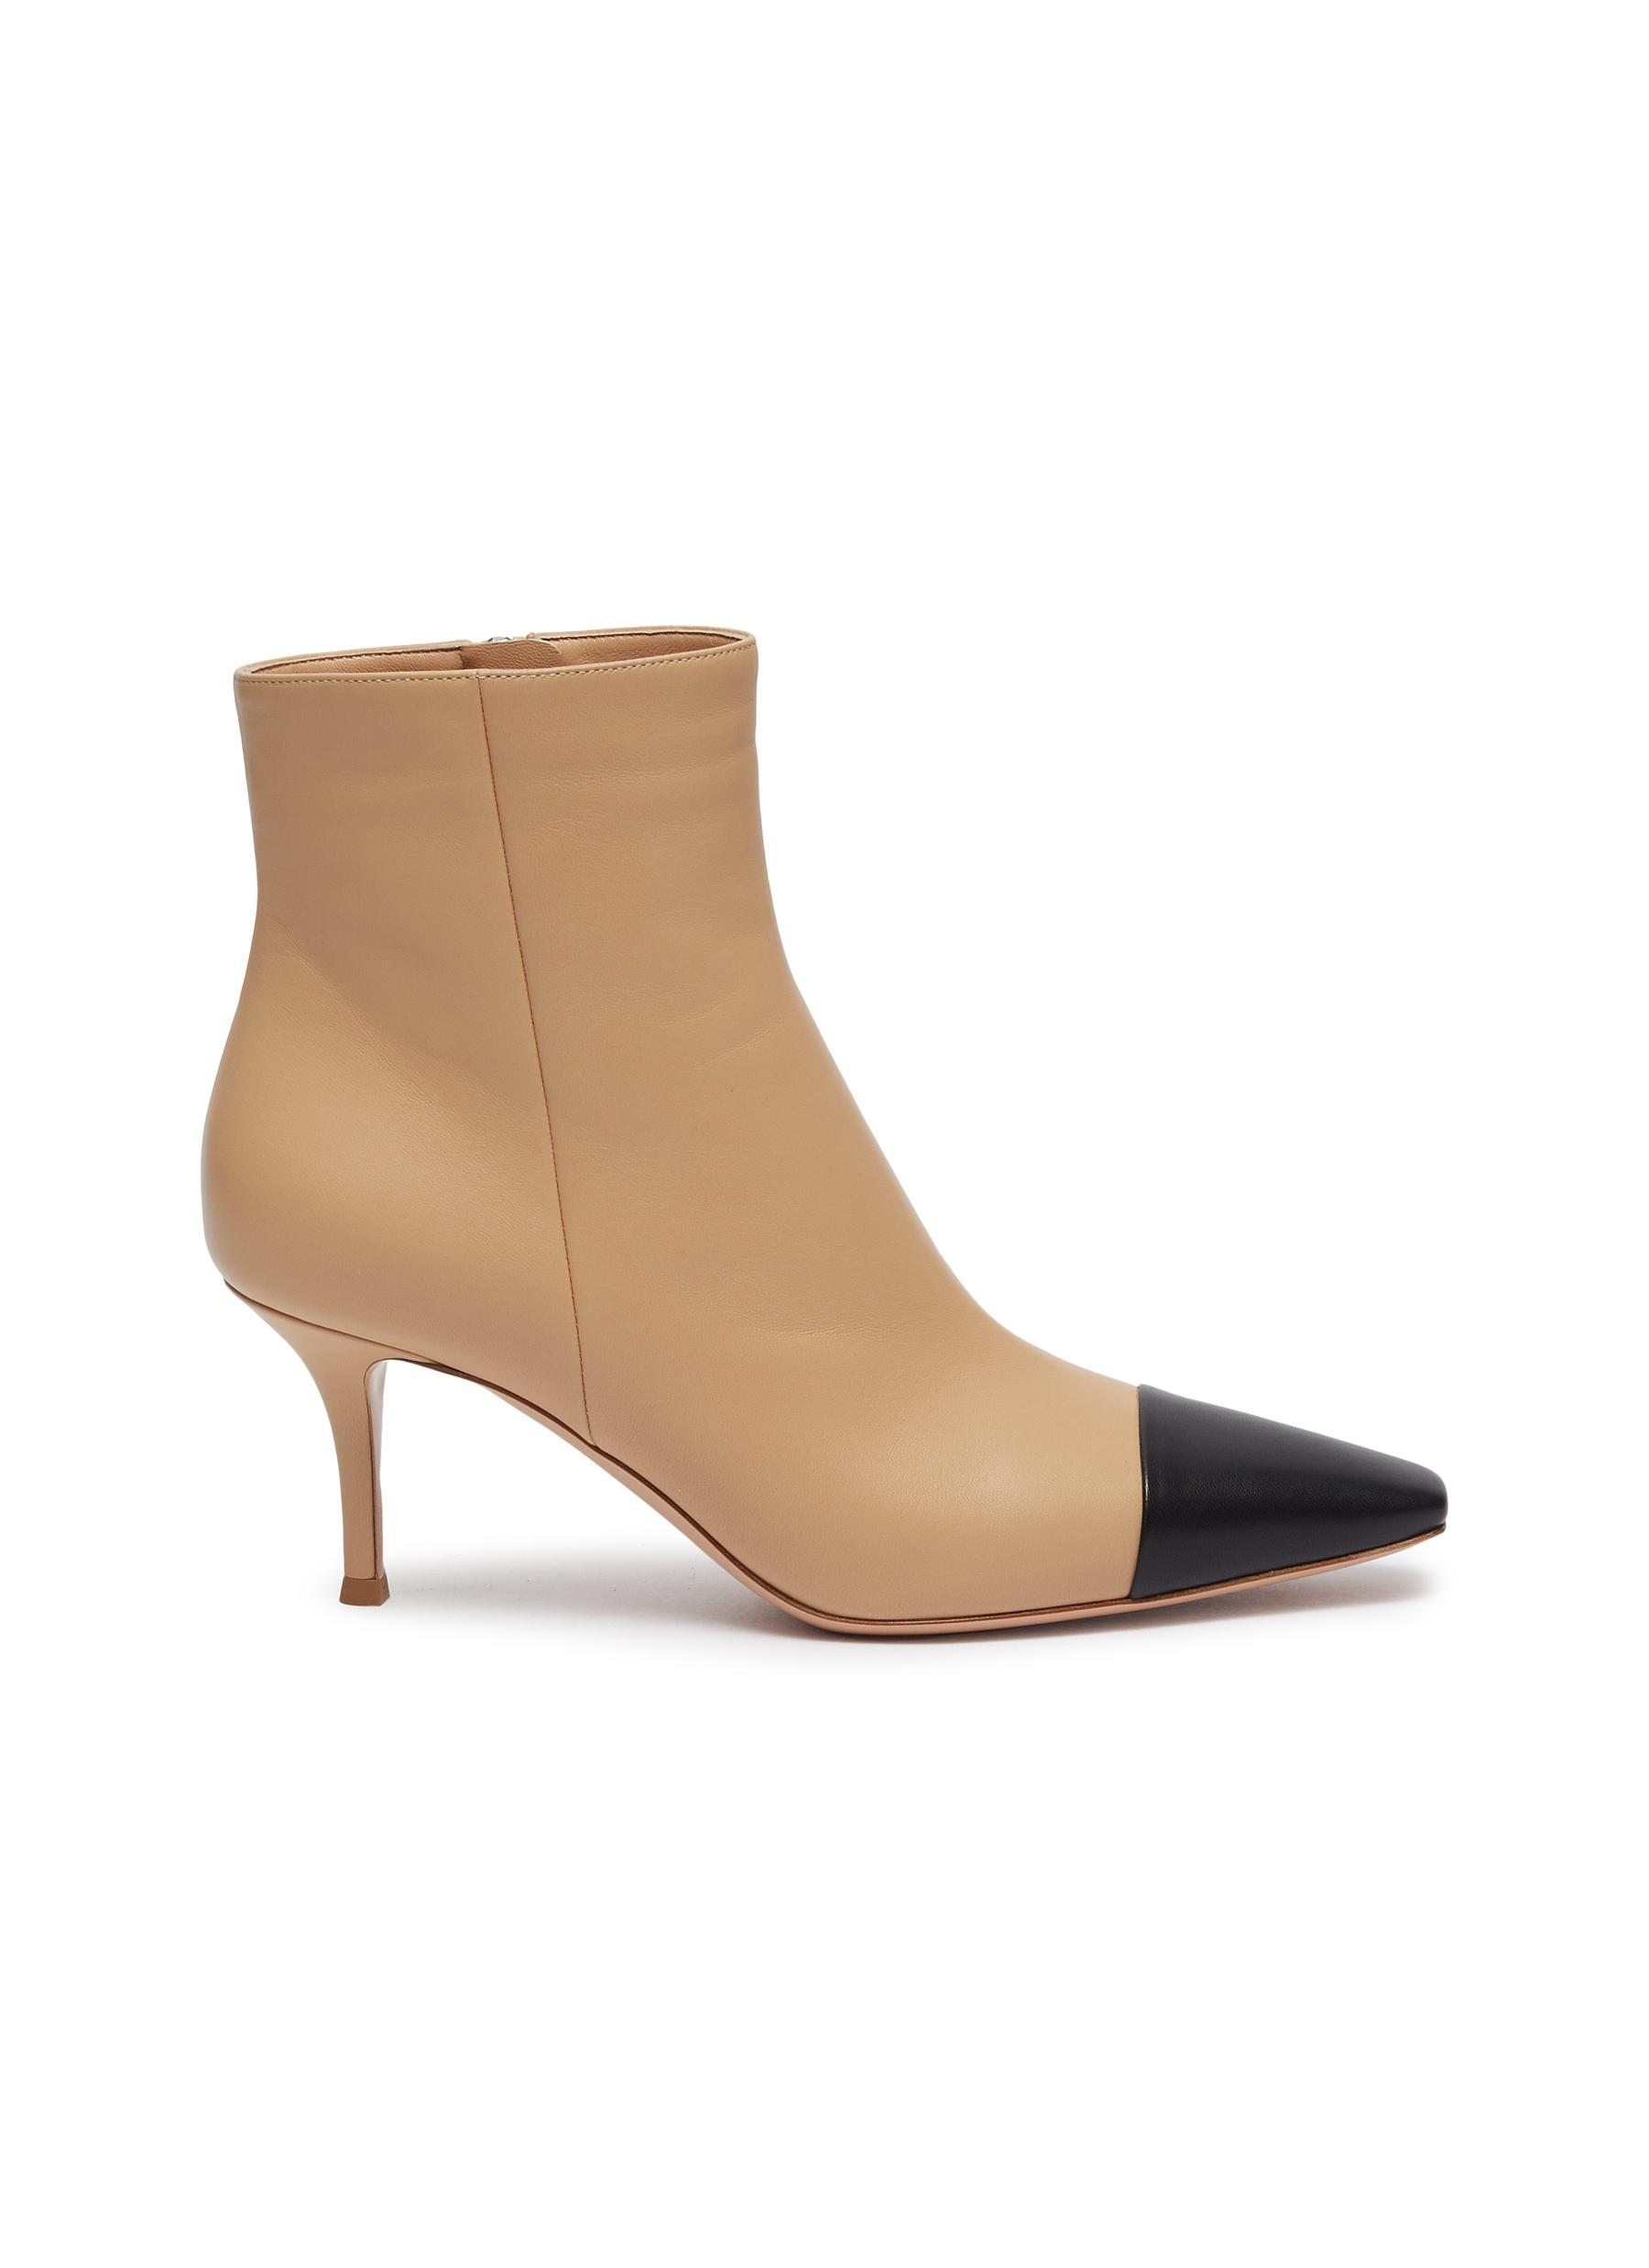 Lucy contrast toecap leather ankle boots by Gianvito Rossi